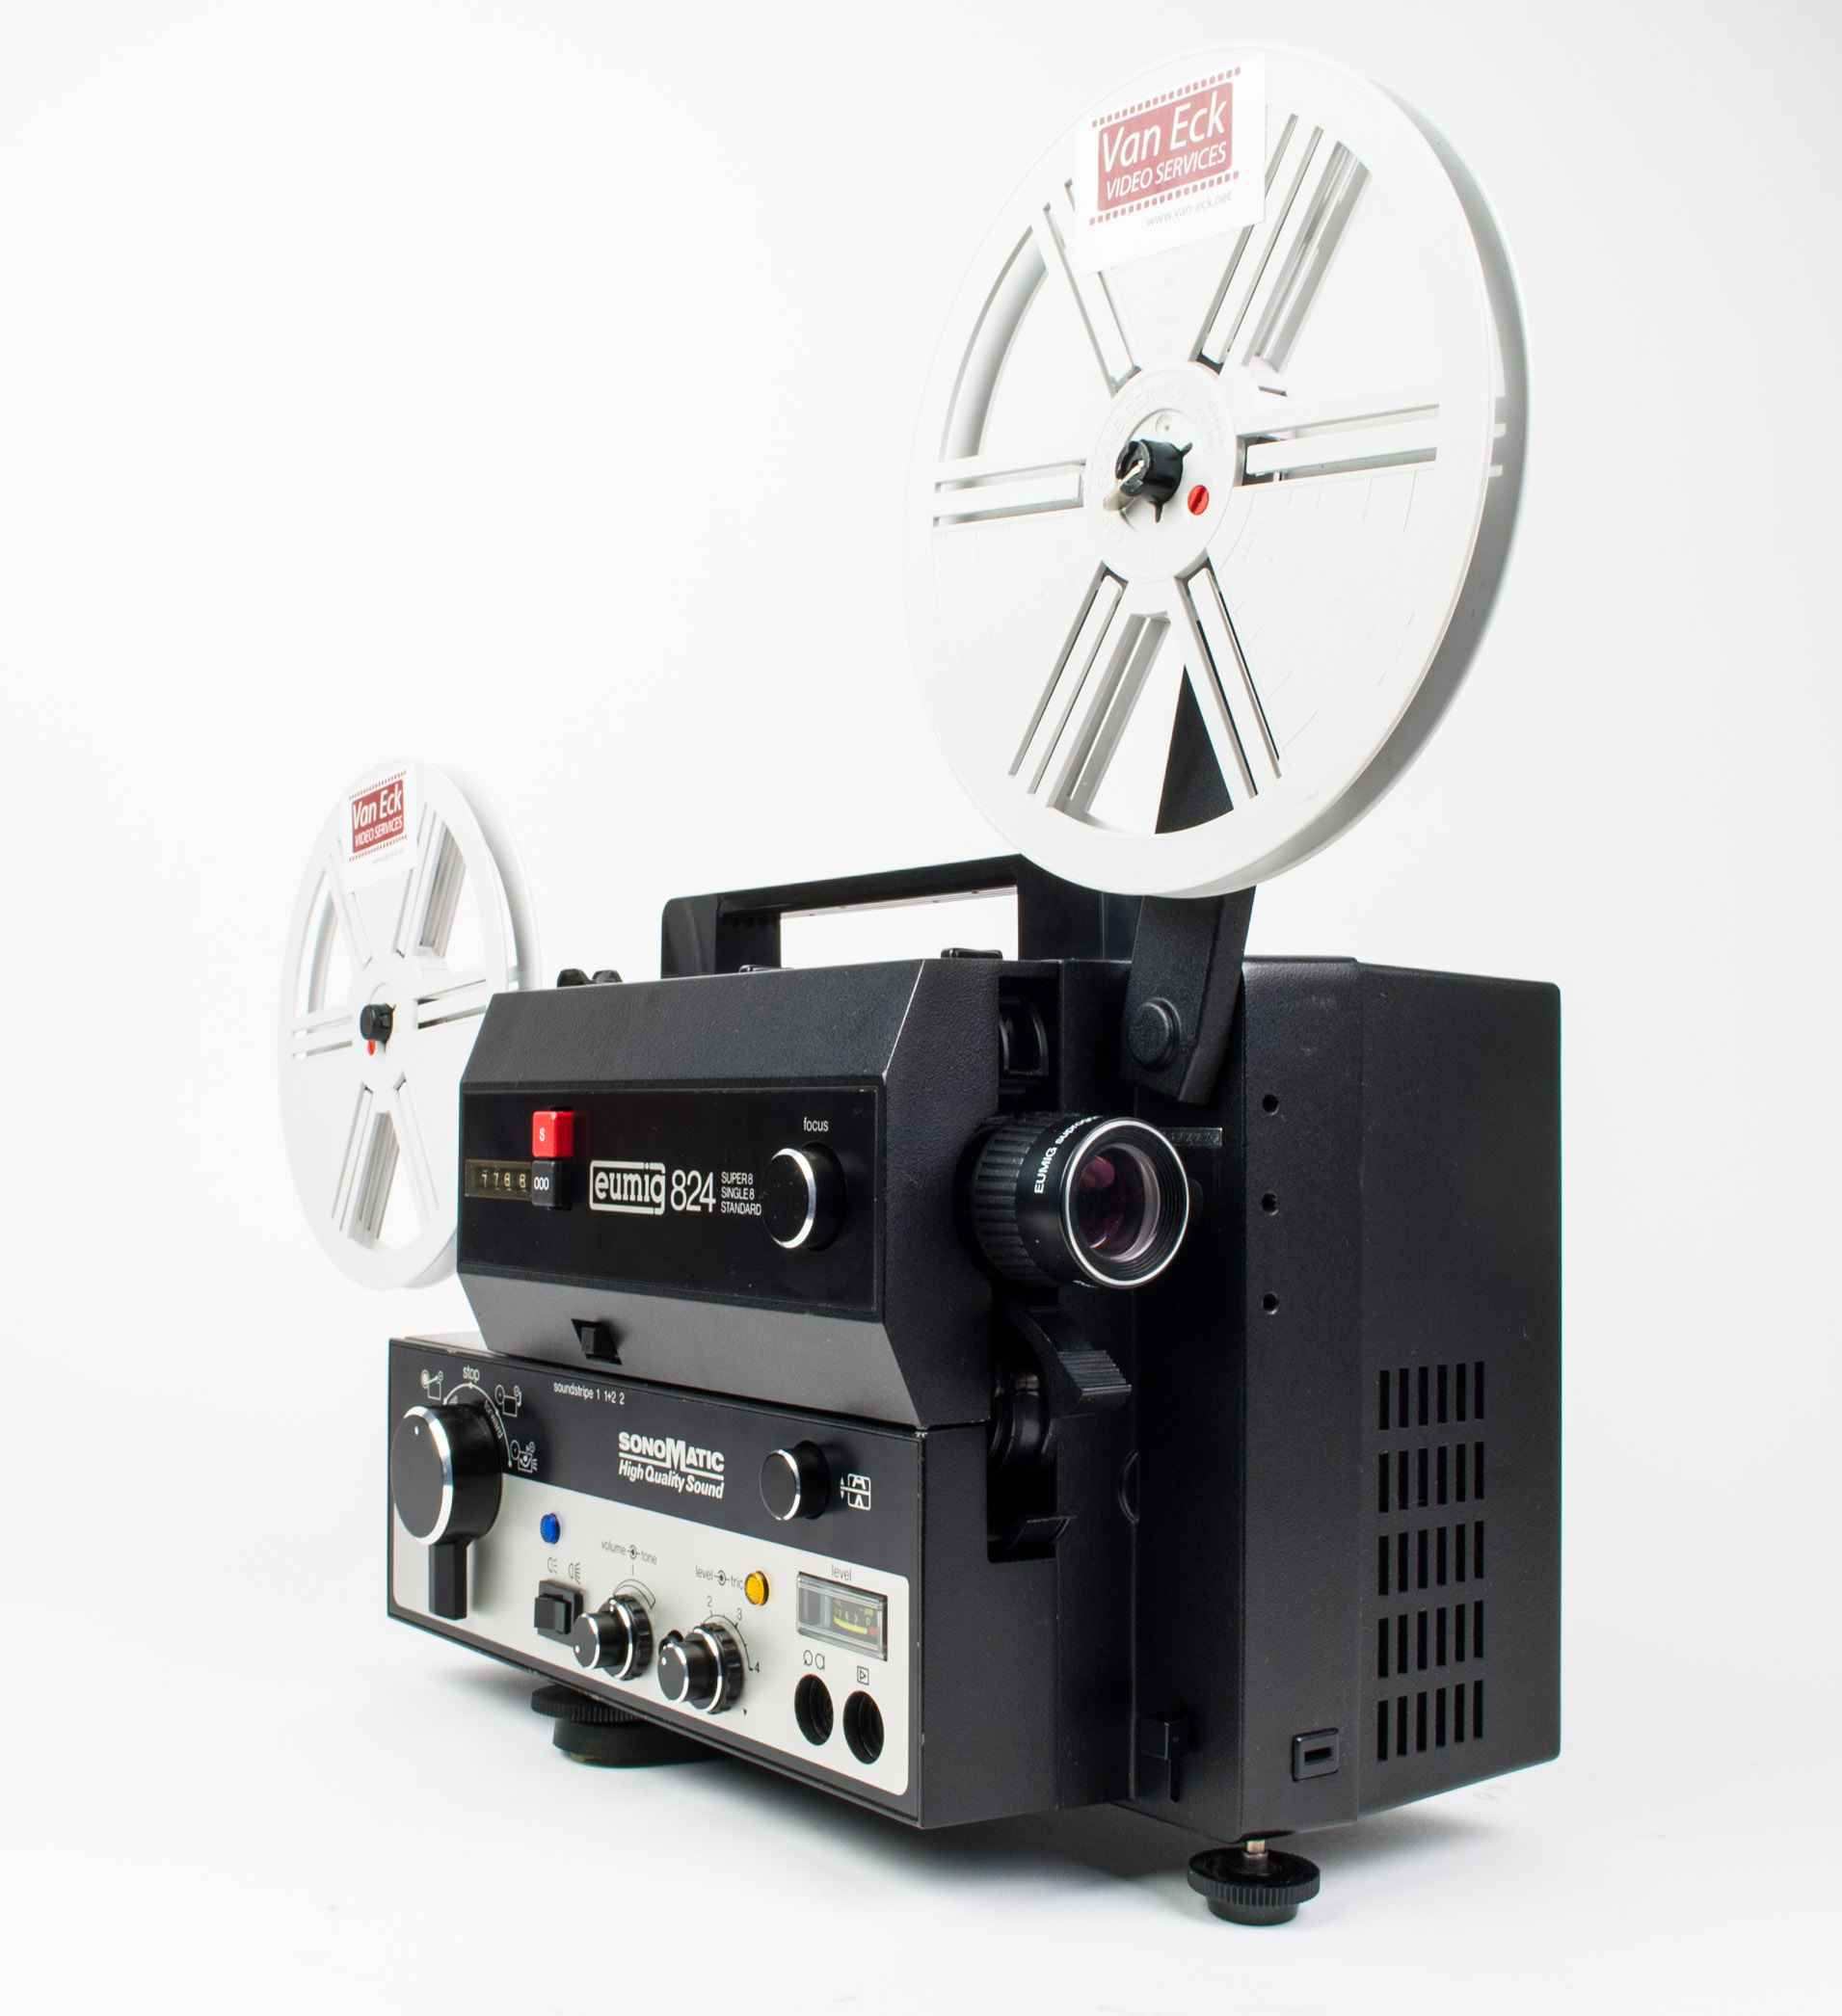 Eumig 824 Sonomatic, Film Projectors - Spare Parts and